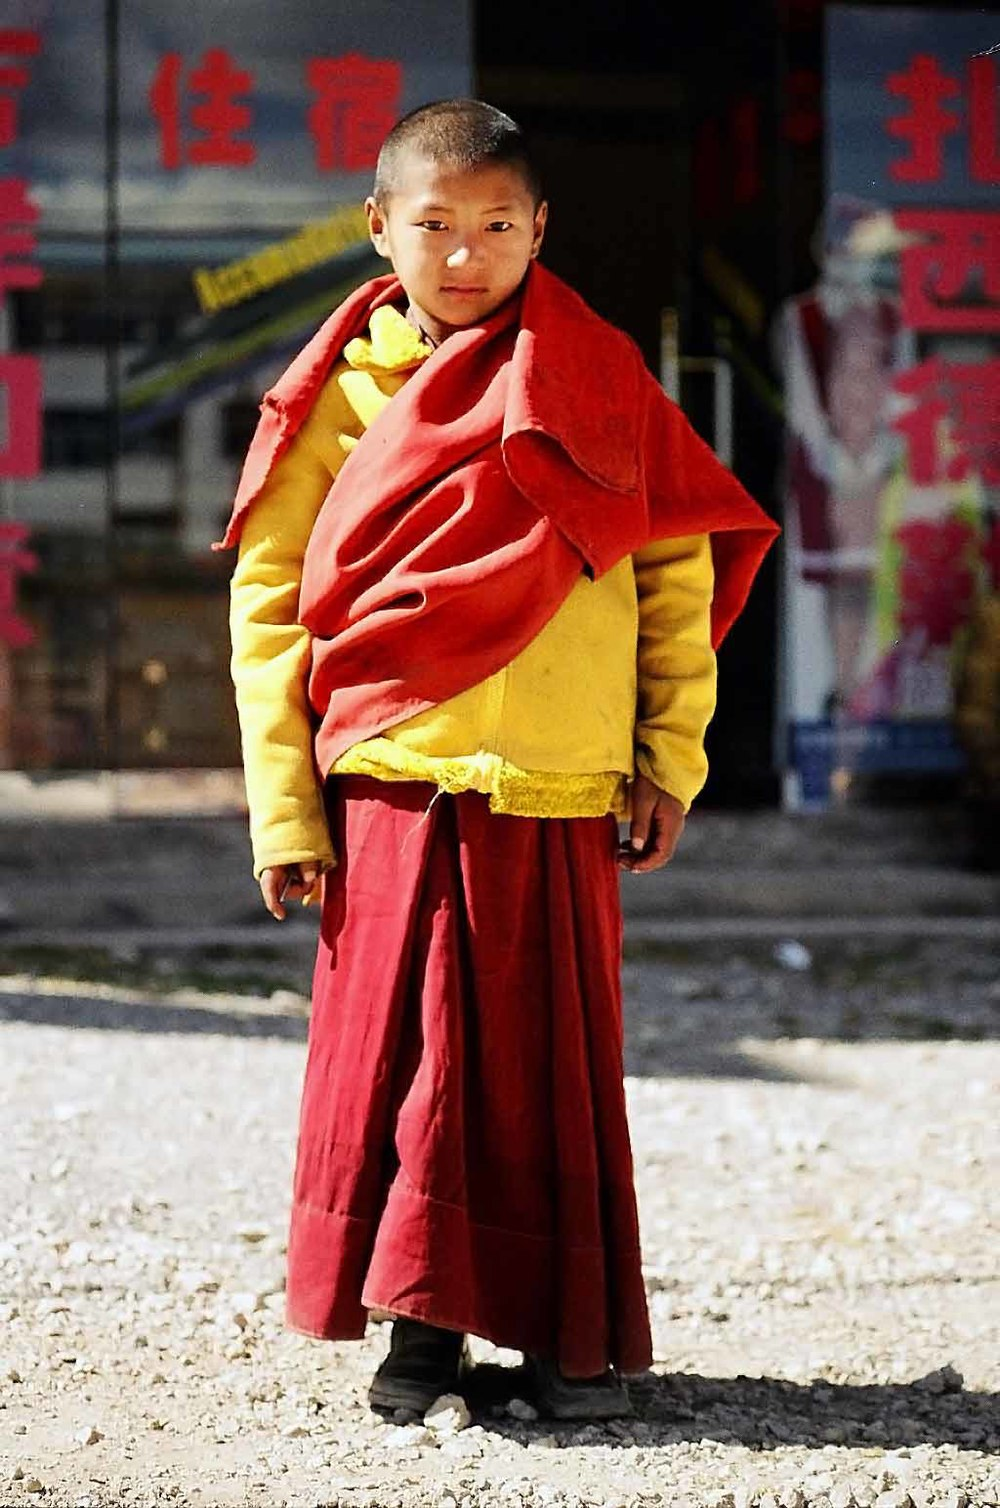 The Young Monk, China